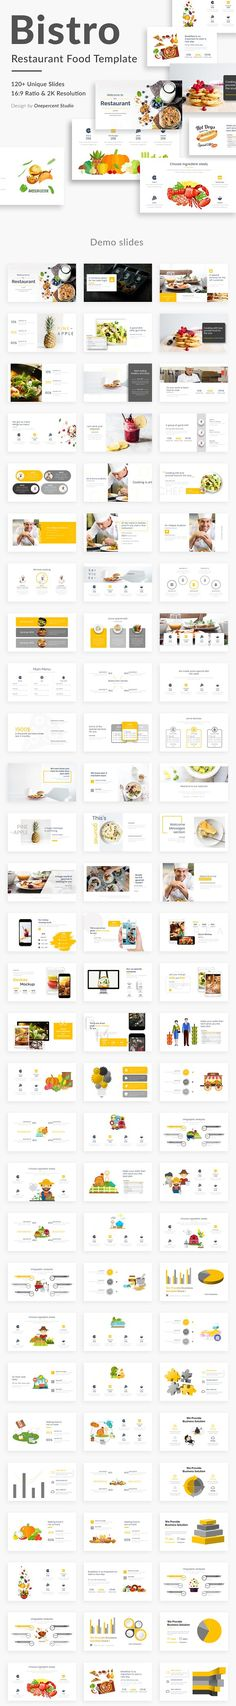 Pin by Premium Design on Keynote Template Pinterest Business